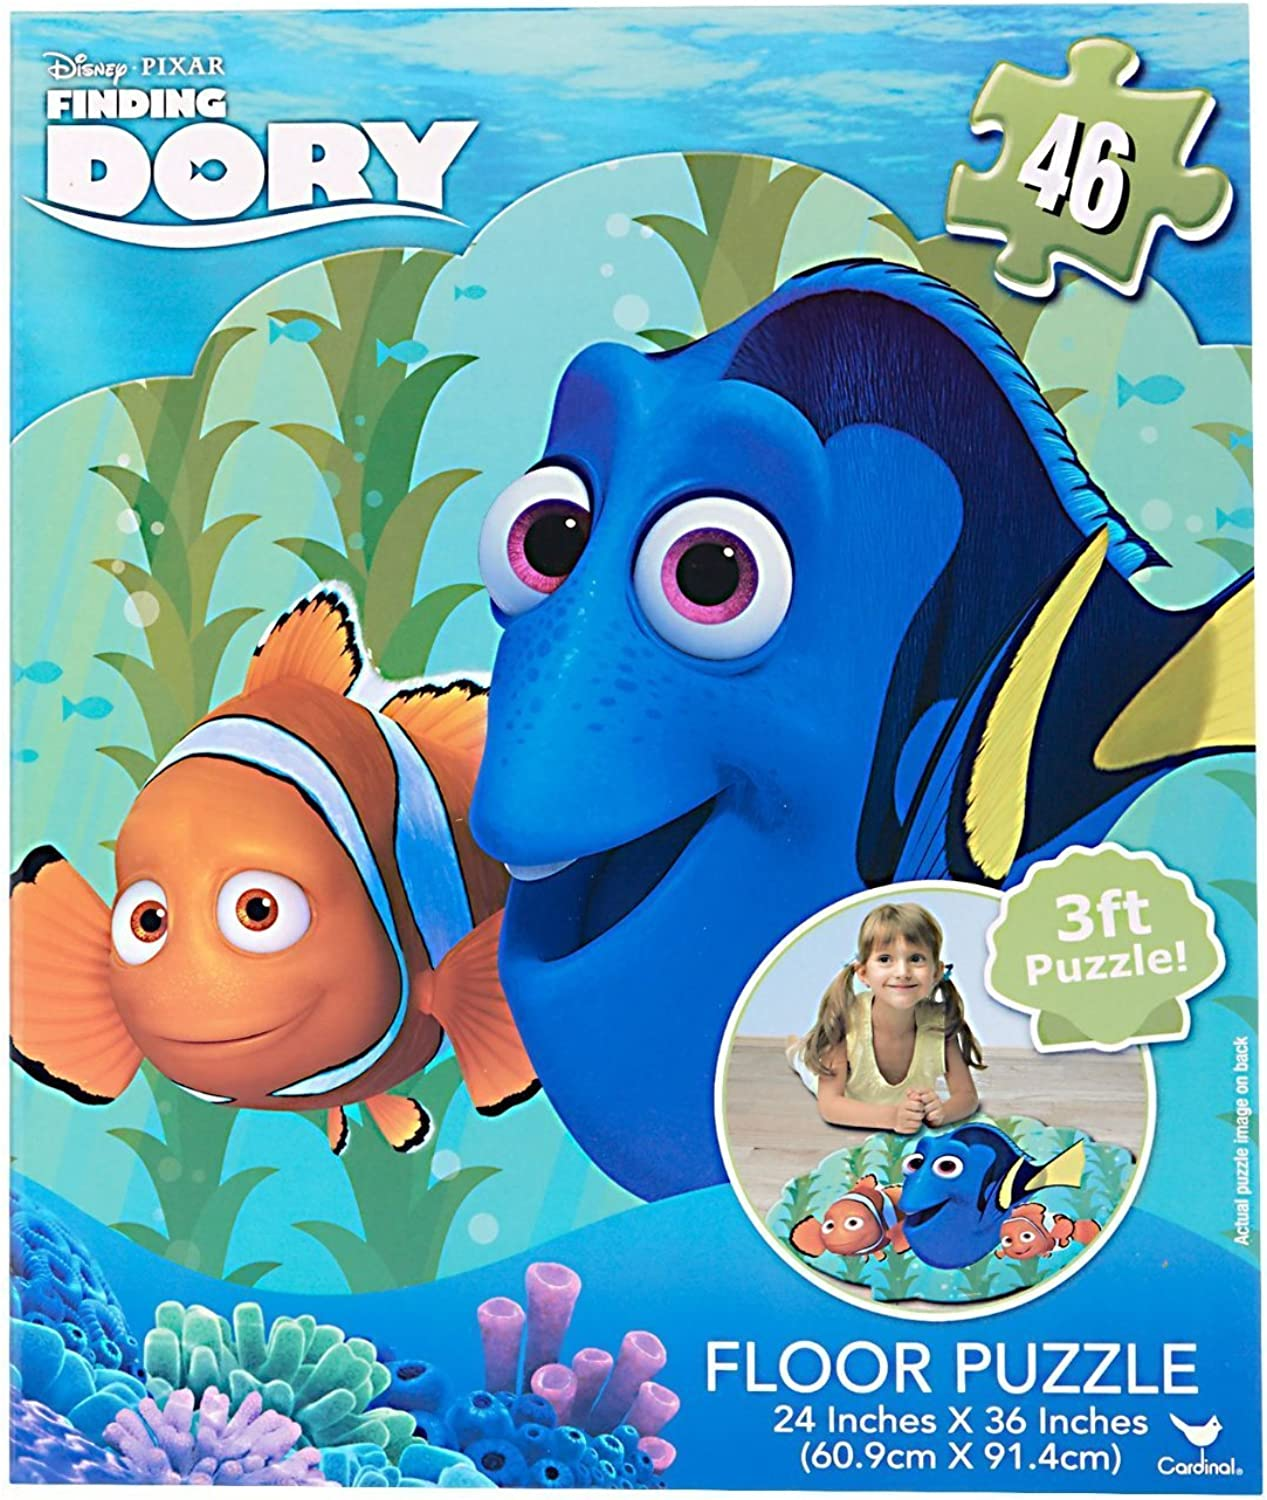 Finding Dory Puzzle Floor Puzzle Set 46 PC Big Jigsaw Finding Dory Puzzle 3 Ft Puzzle by Disney